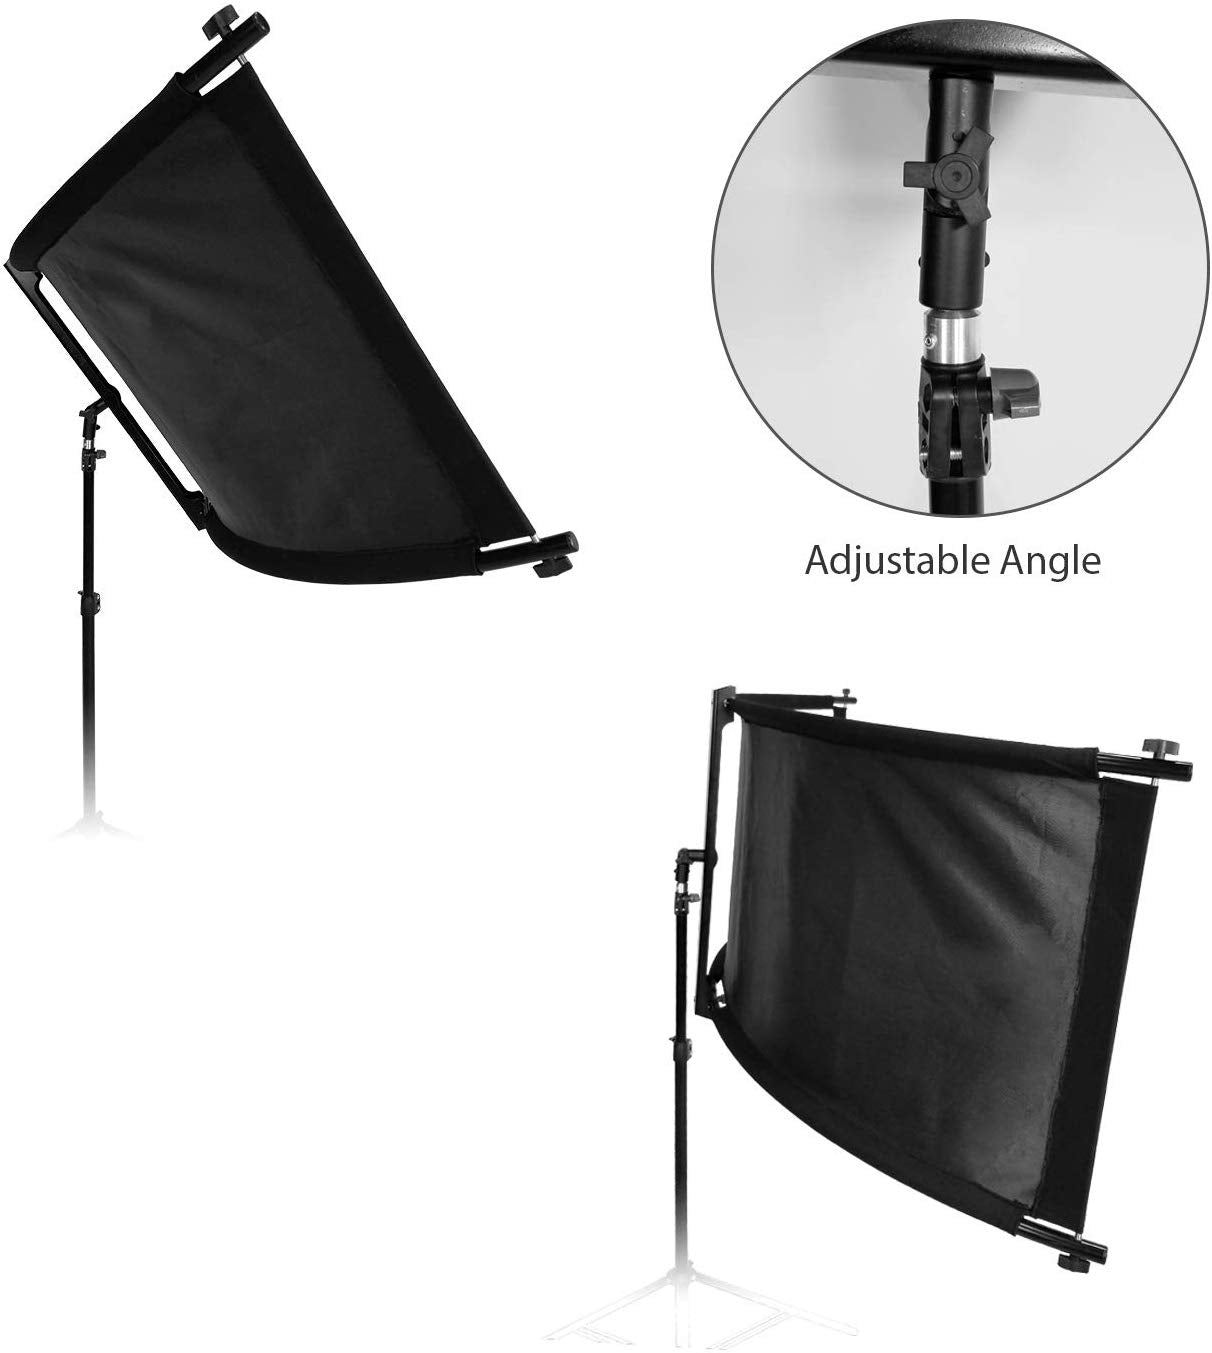 AGG1570 LimoStudio Digital Photo Portable Ecommerce Business Shooting Table White Background